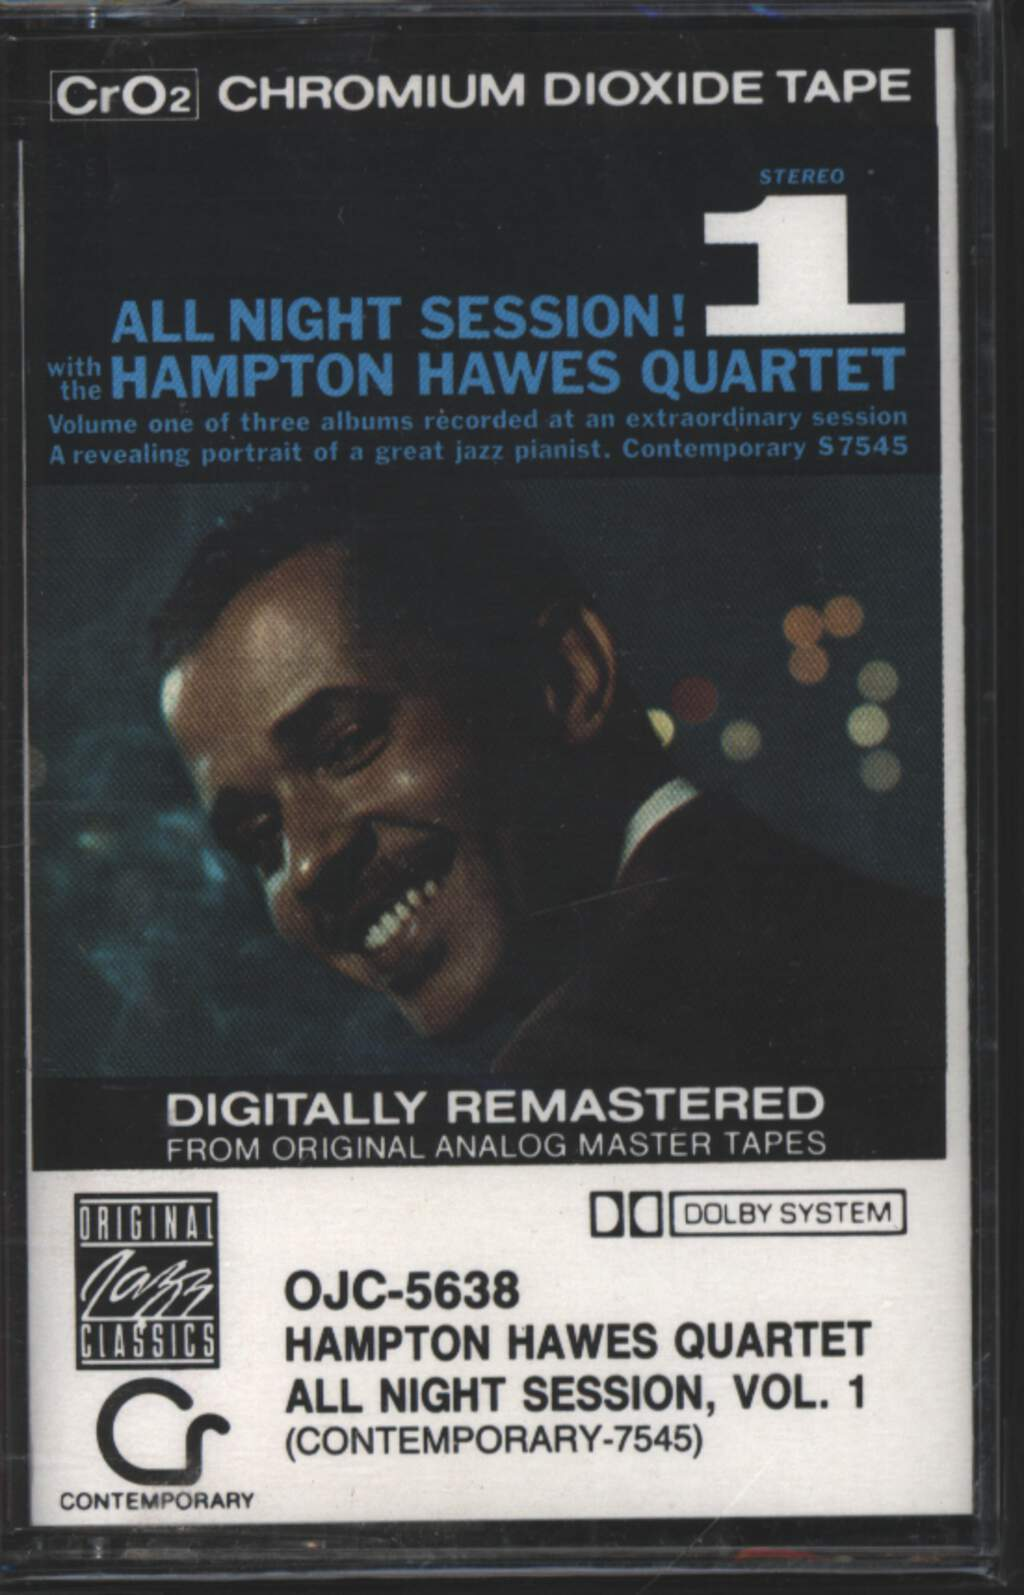 Hampton Hawes Quartet: All Night Session, Vol. 1, Tape